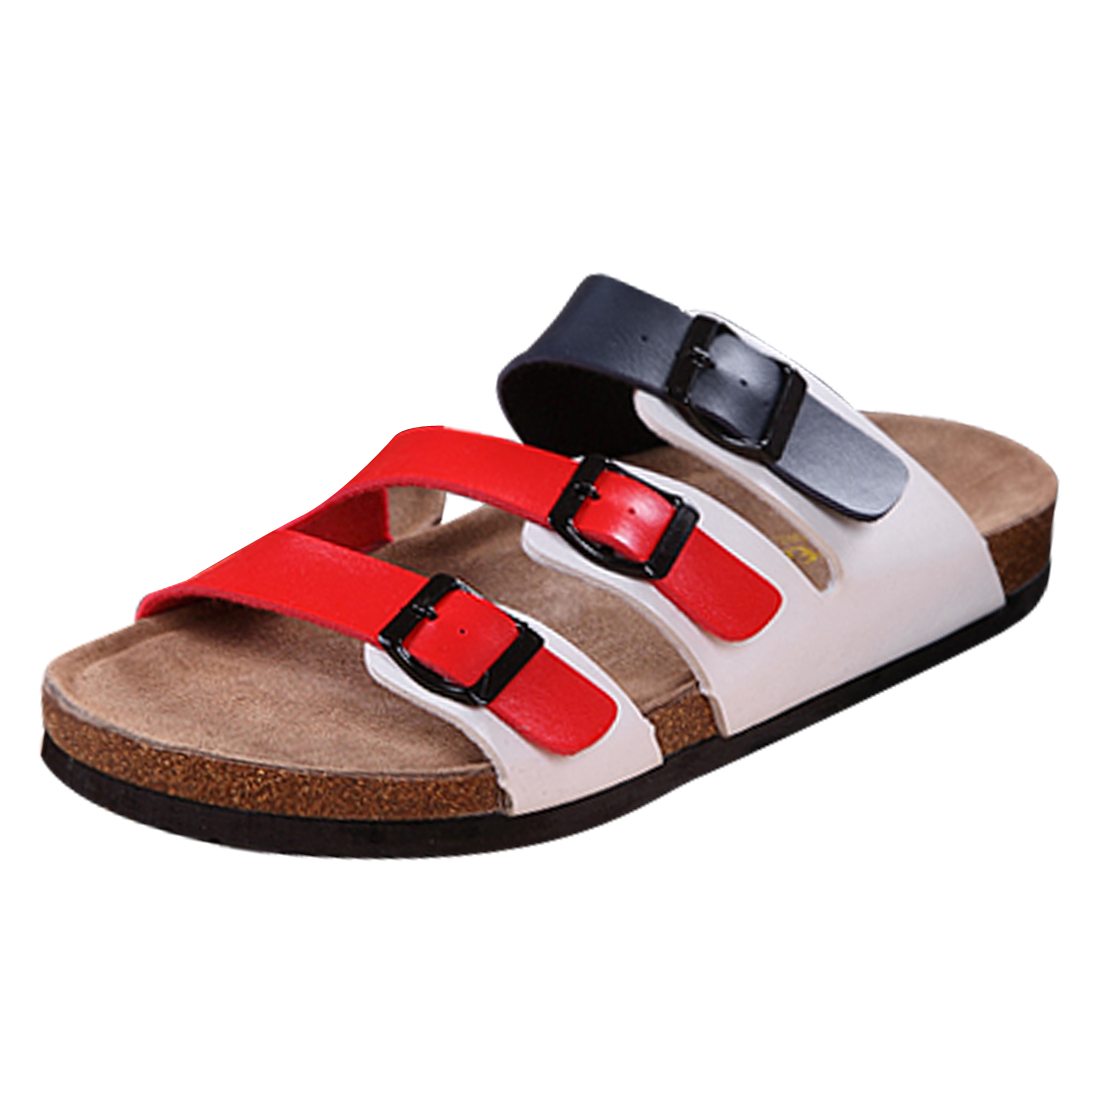 Men Casual Wear Red Navy Blue White Functional Buckles Sandals US 8